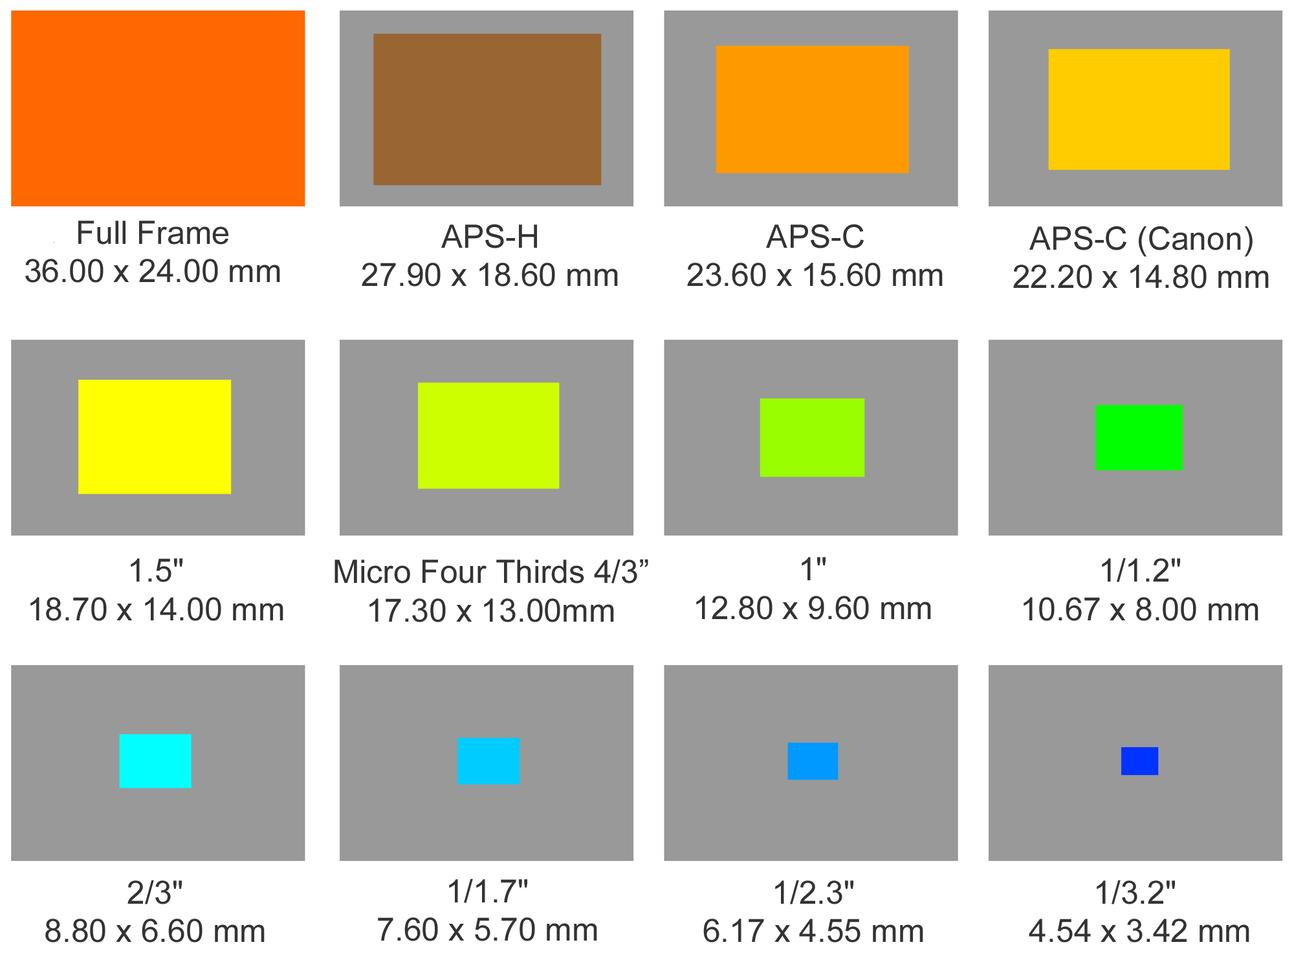 Different sensor sizes compared with each other shows how big Full Frame, APS-H, APS-C (Nikon, Sony Pentax), APS-C (Canon), 1.5-inch, Micro Four Thirds, 1-inch, 1/1.2-inch, 2/3-inch, 1/1.7-inch, 1/2.3-inch and 1/3.2-inch sensors are